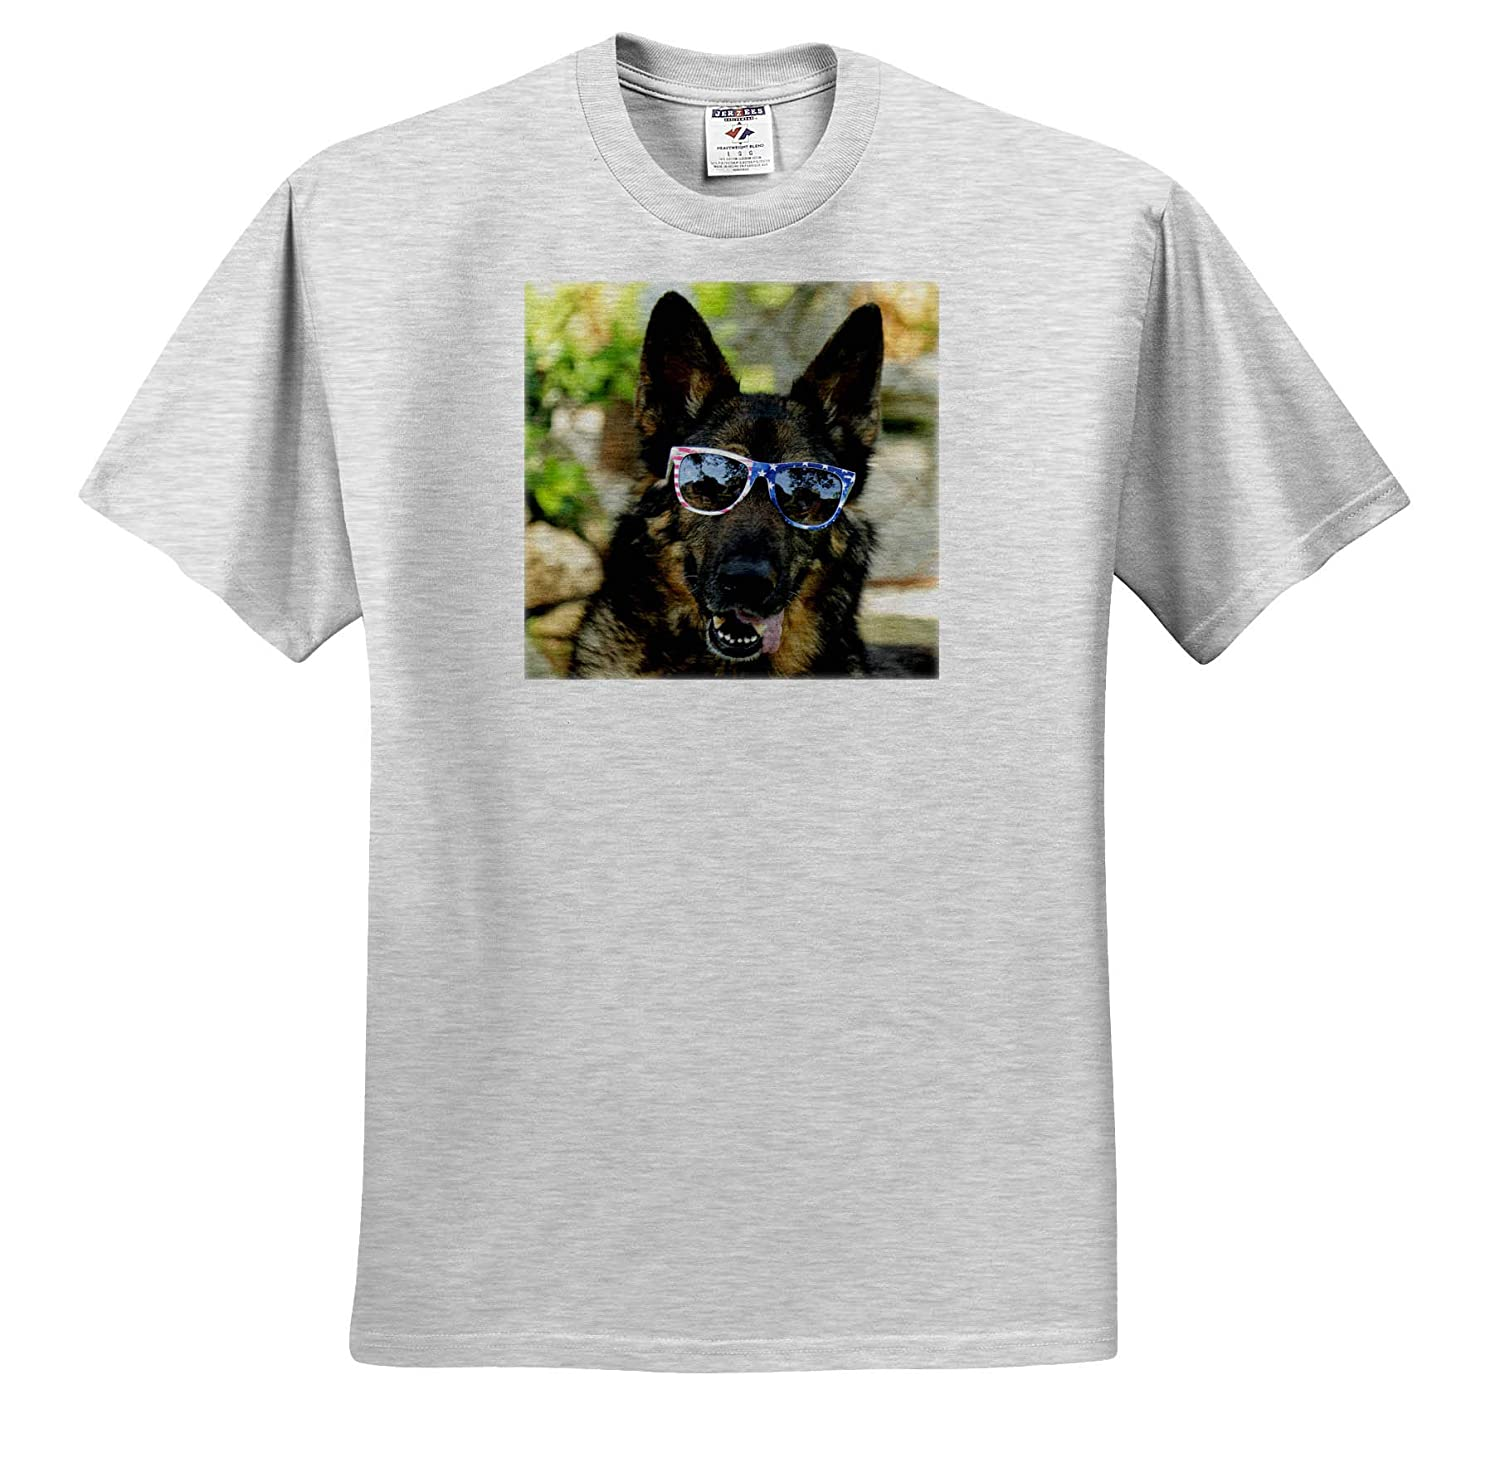 3dRose Stamp City Photograph of a German Shepherd Wearing Patriotic Sunglasses ts/_315569 - Adult T-Shirt XL Animals